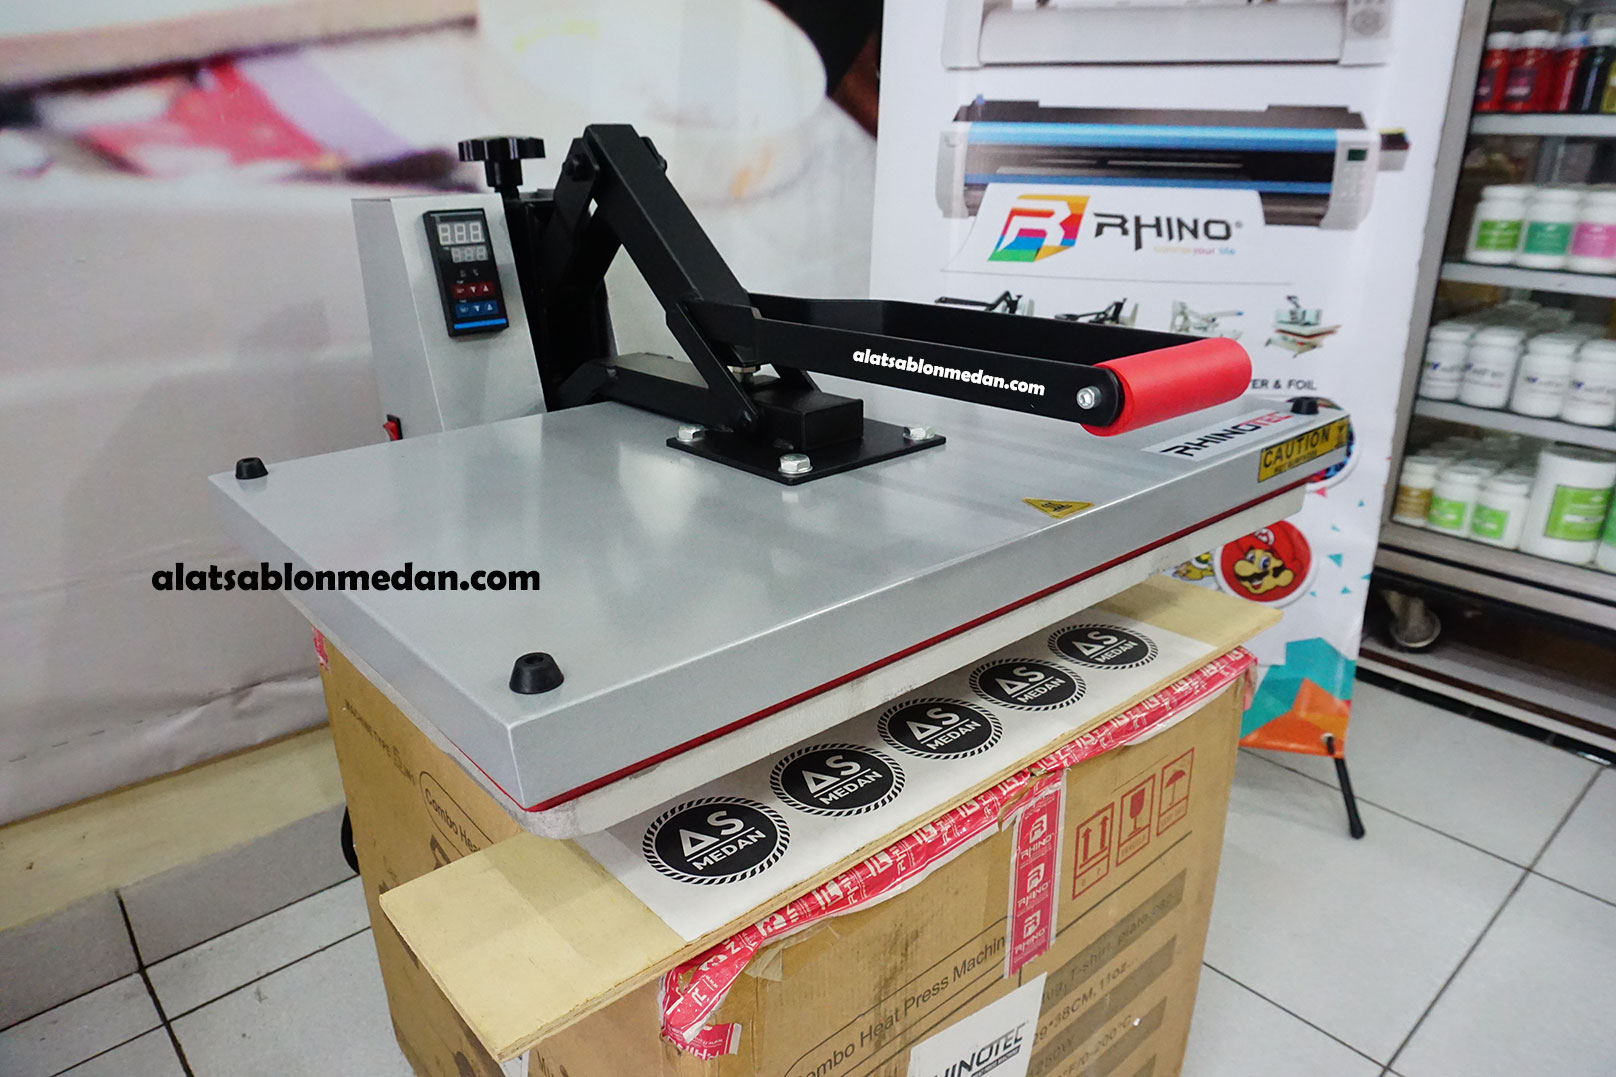 Rhinotec Mesin press kaos 40x60 1400w